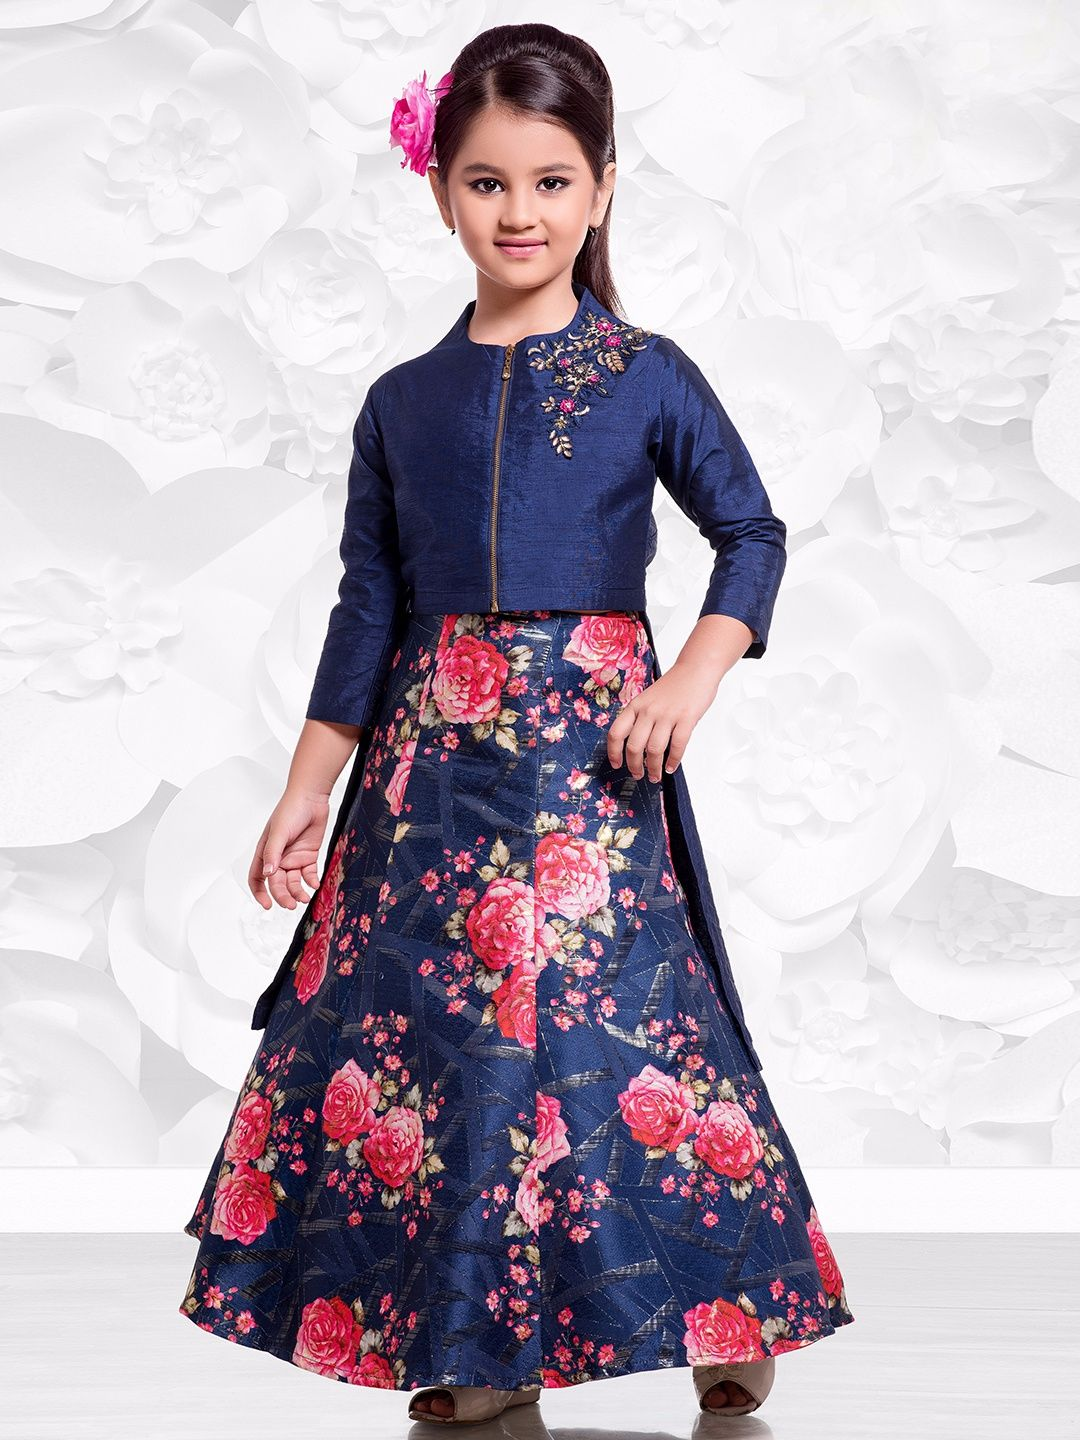 97657783519a2 Navy Silk Printed Choli Suit Frocks For Girls, Kids Frocks, Girls Pageant  Dresses,